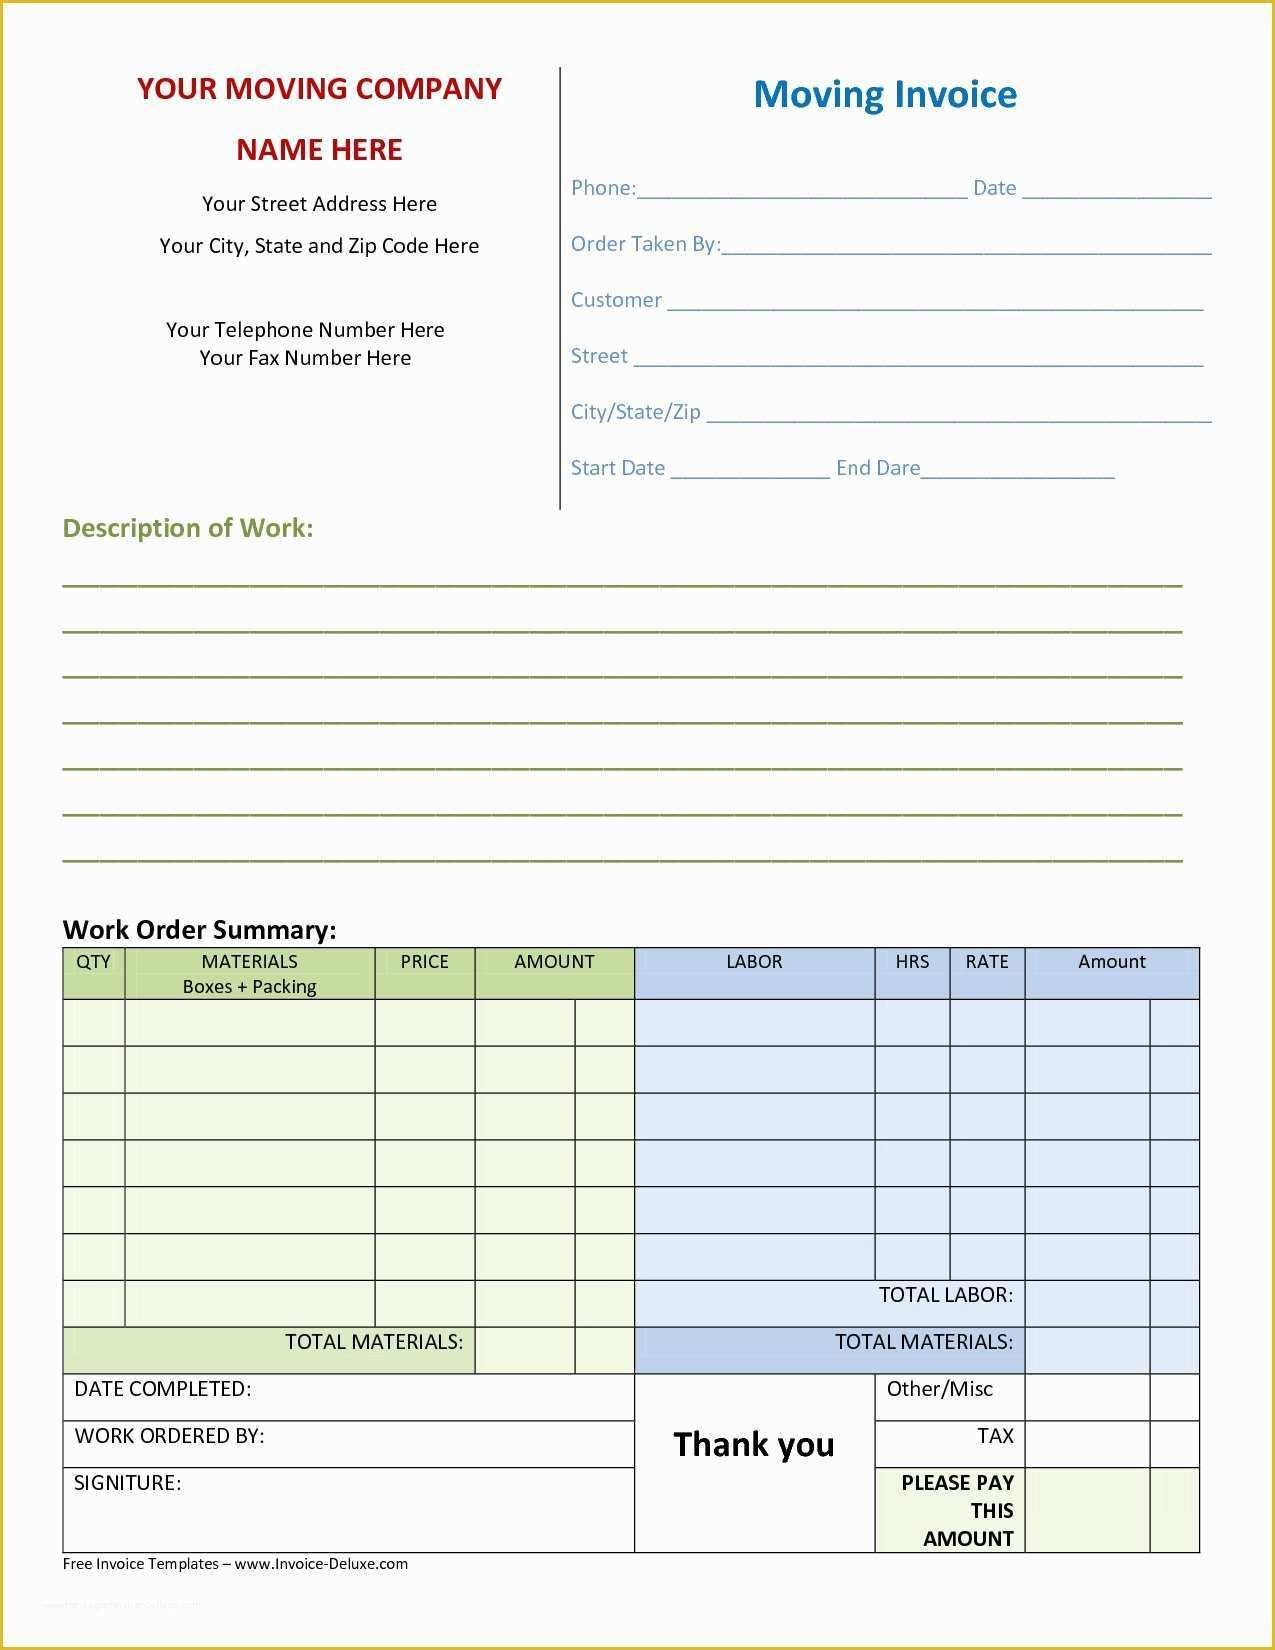 Free Online Invoice Template Of 55 Free Invoice Templates